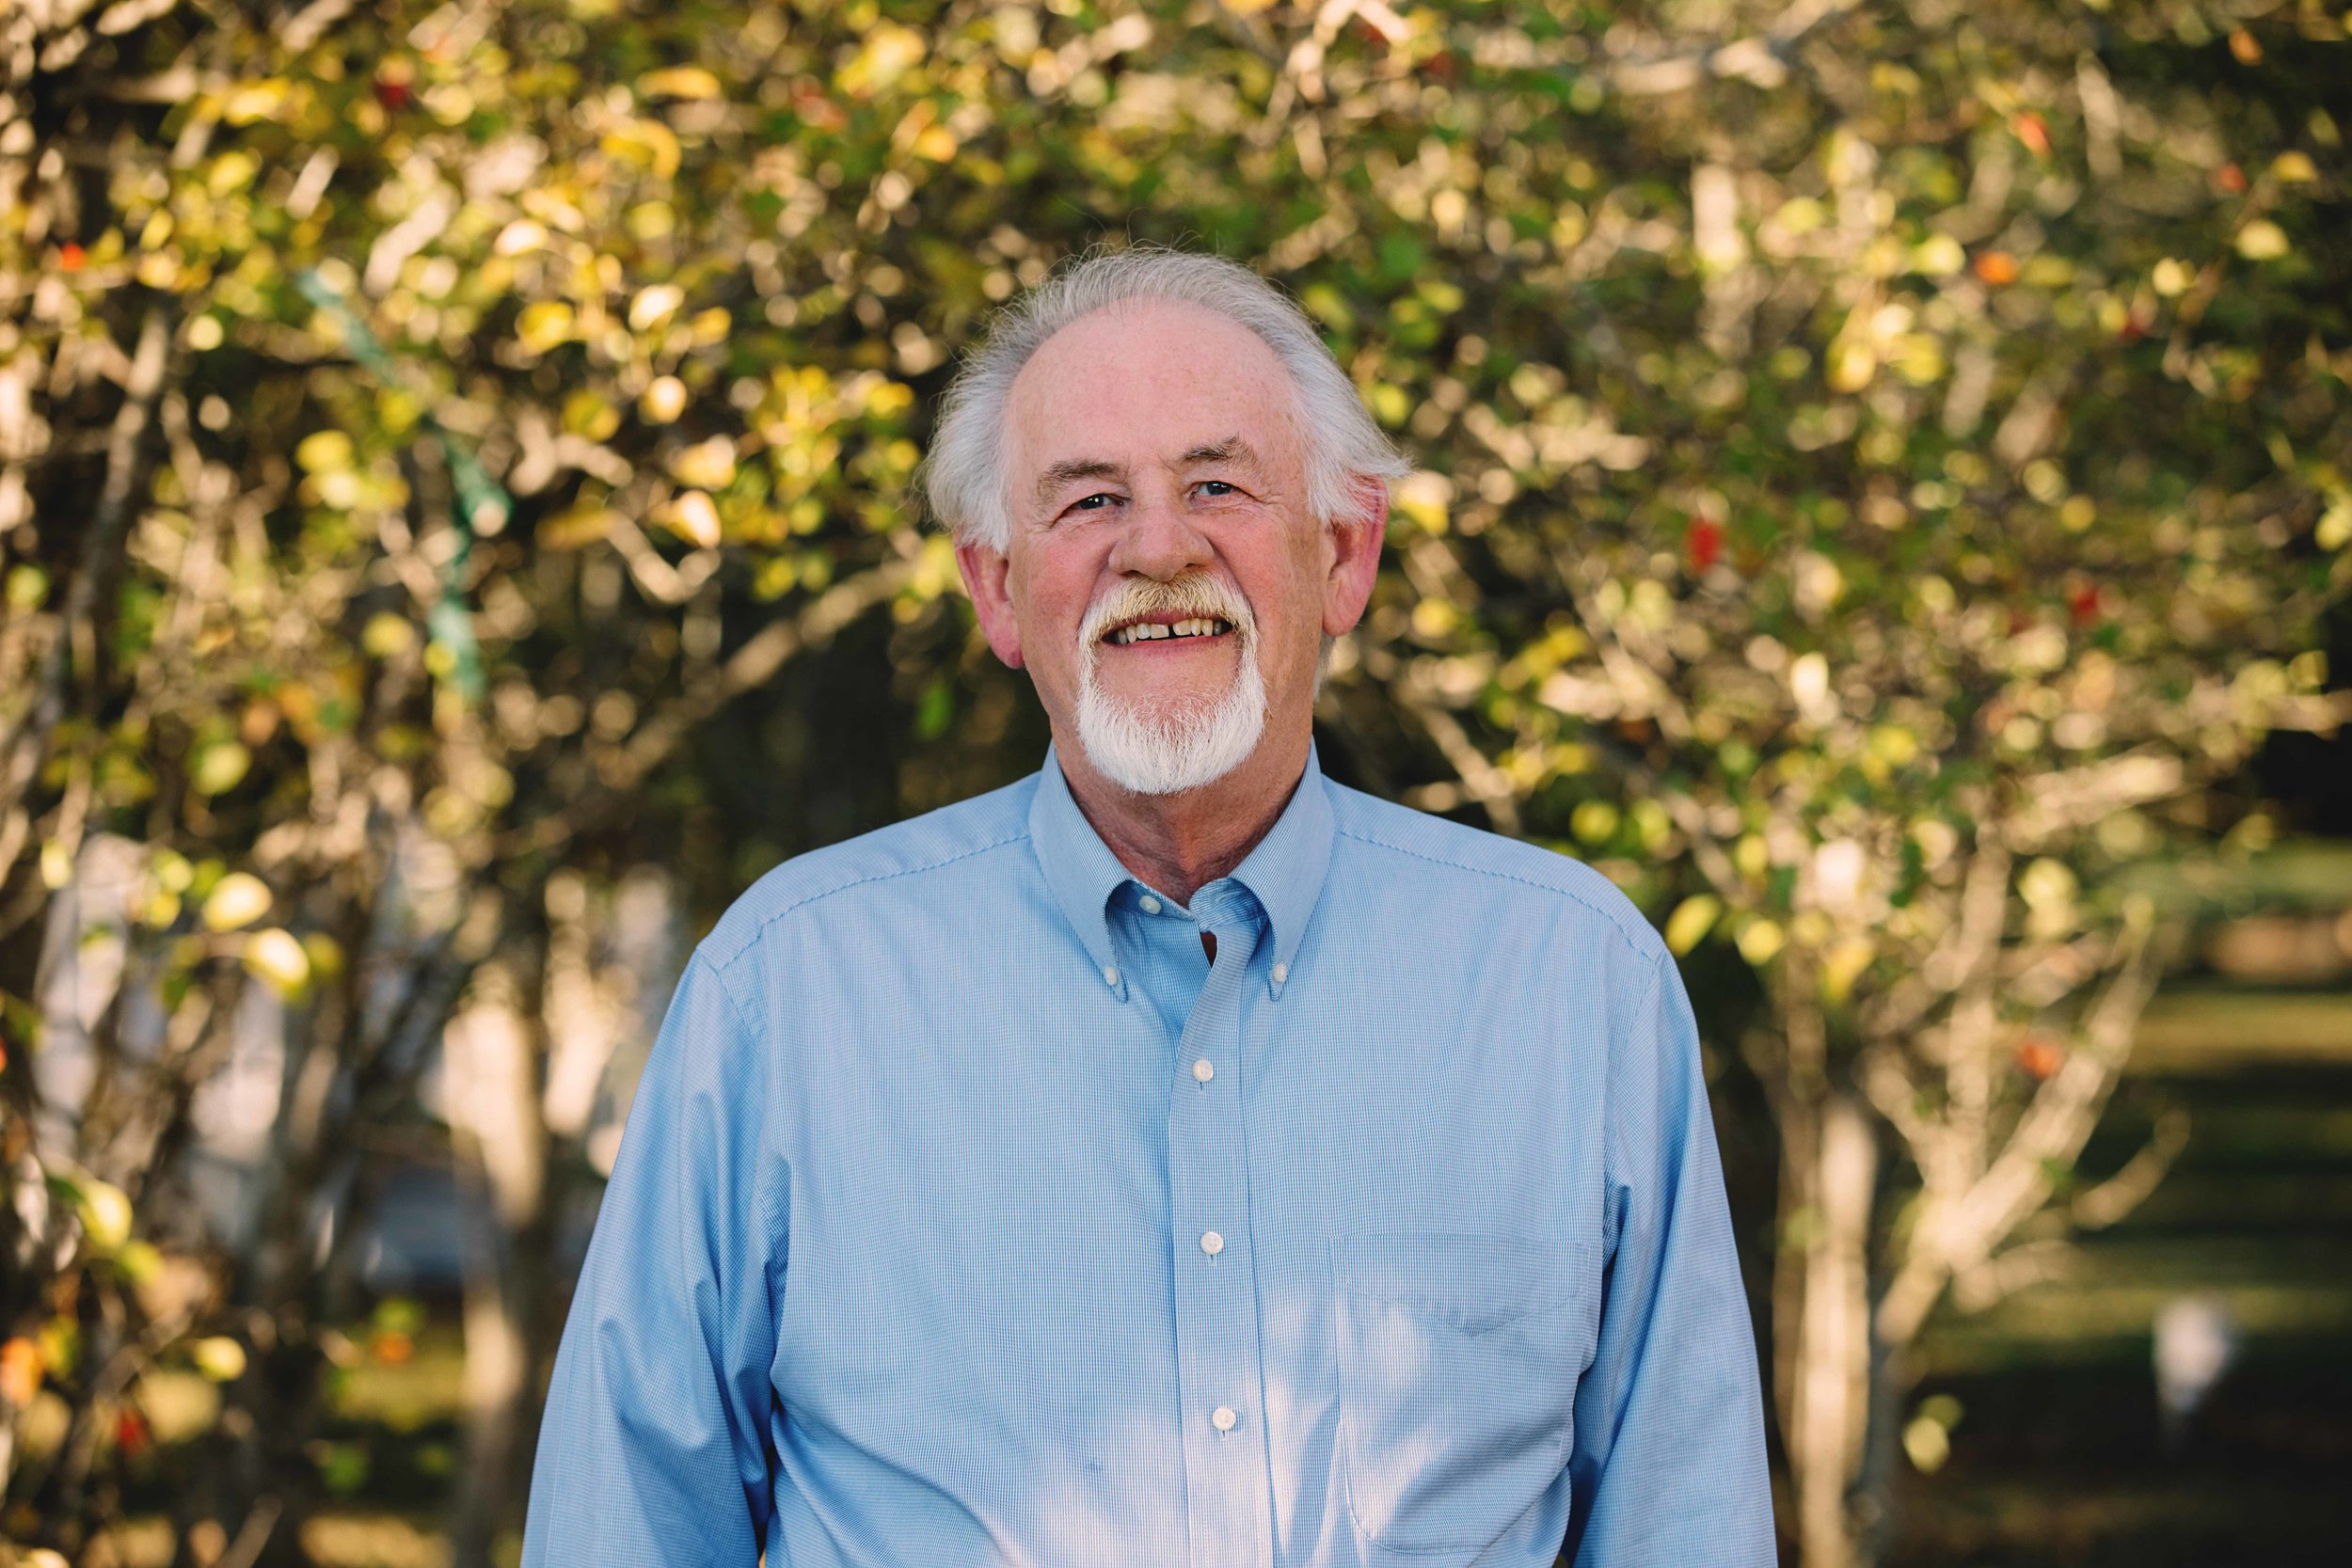 Don Harrington - Harrington Realty welcomes you to Scottsboro in Northeast Alabama. Our business relationships and local experience have provided a unique advantage to our customers for over 30 years.